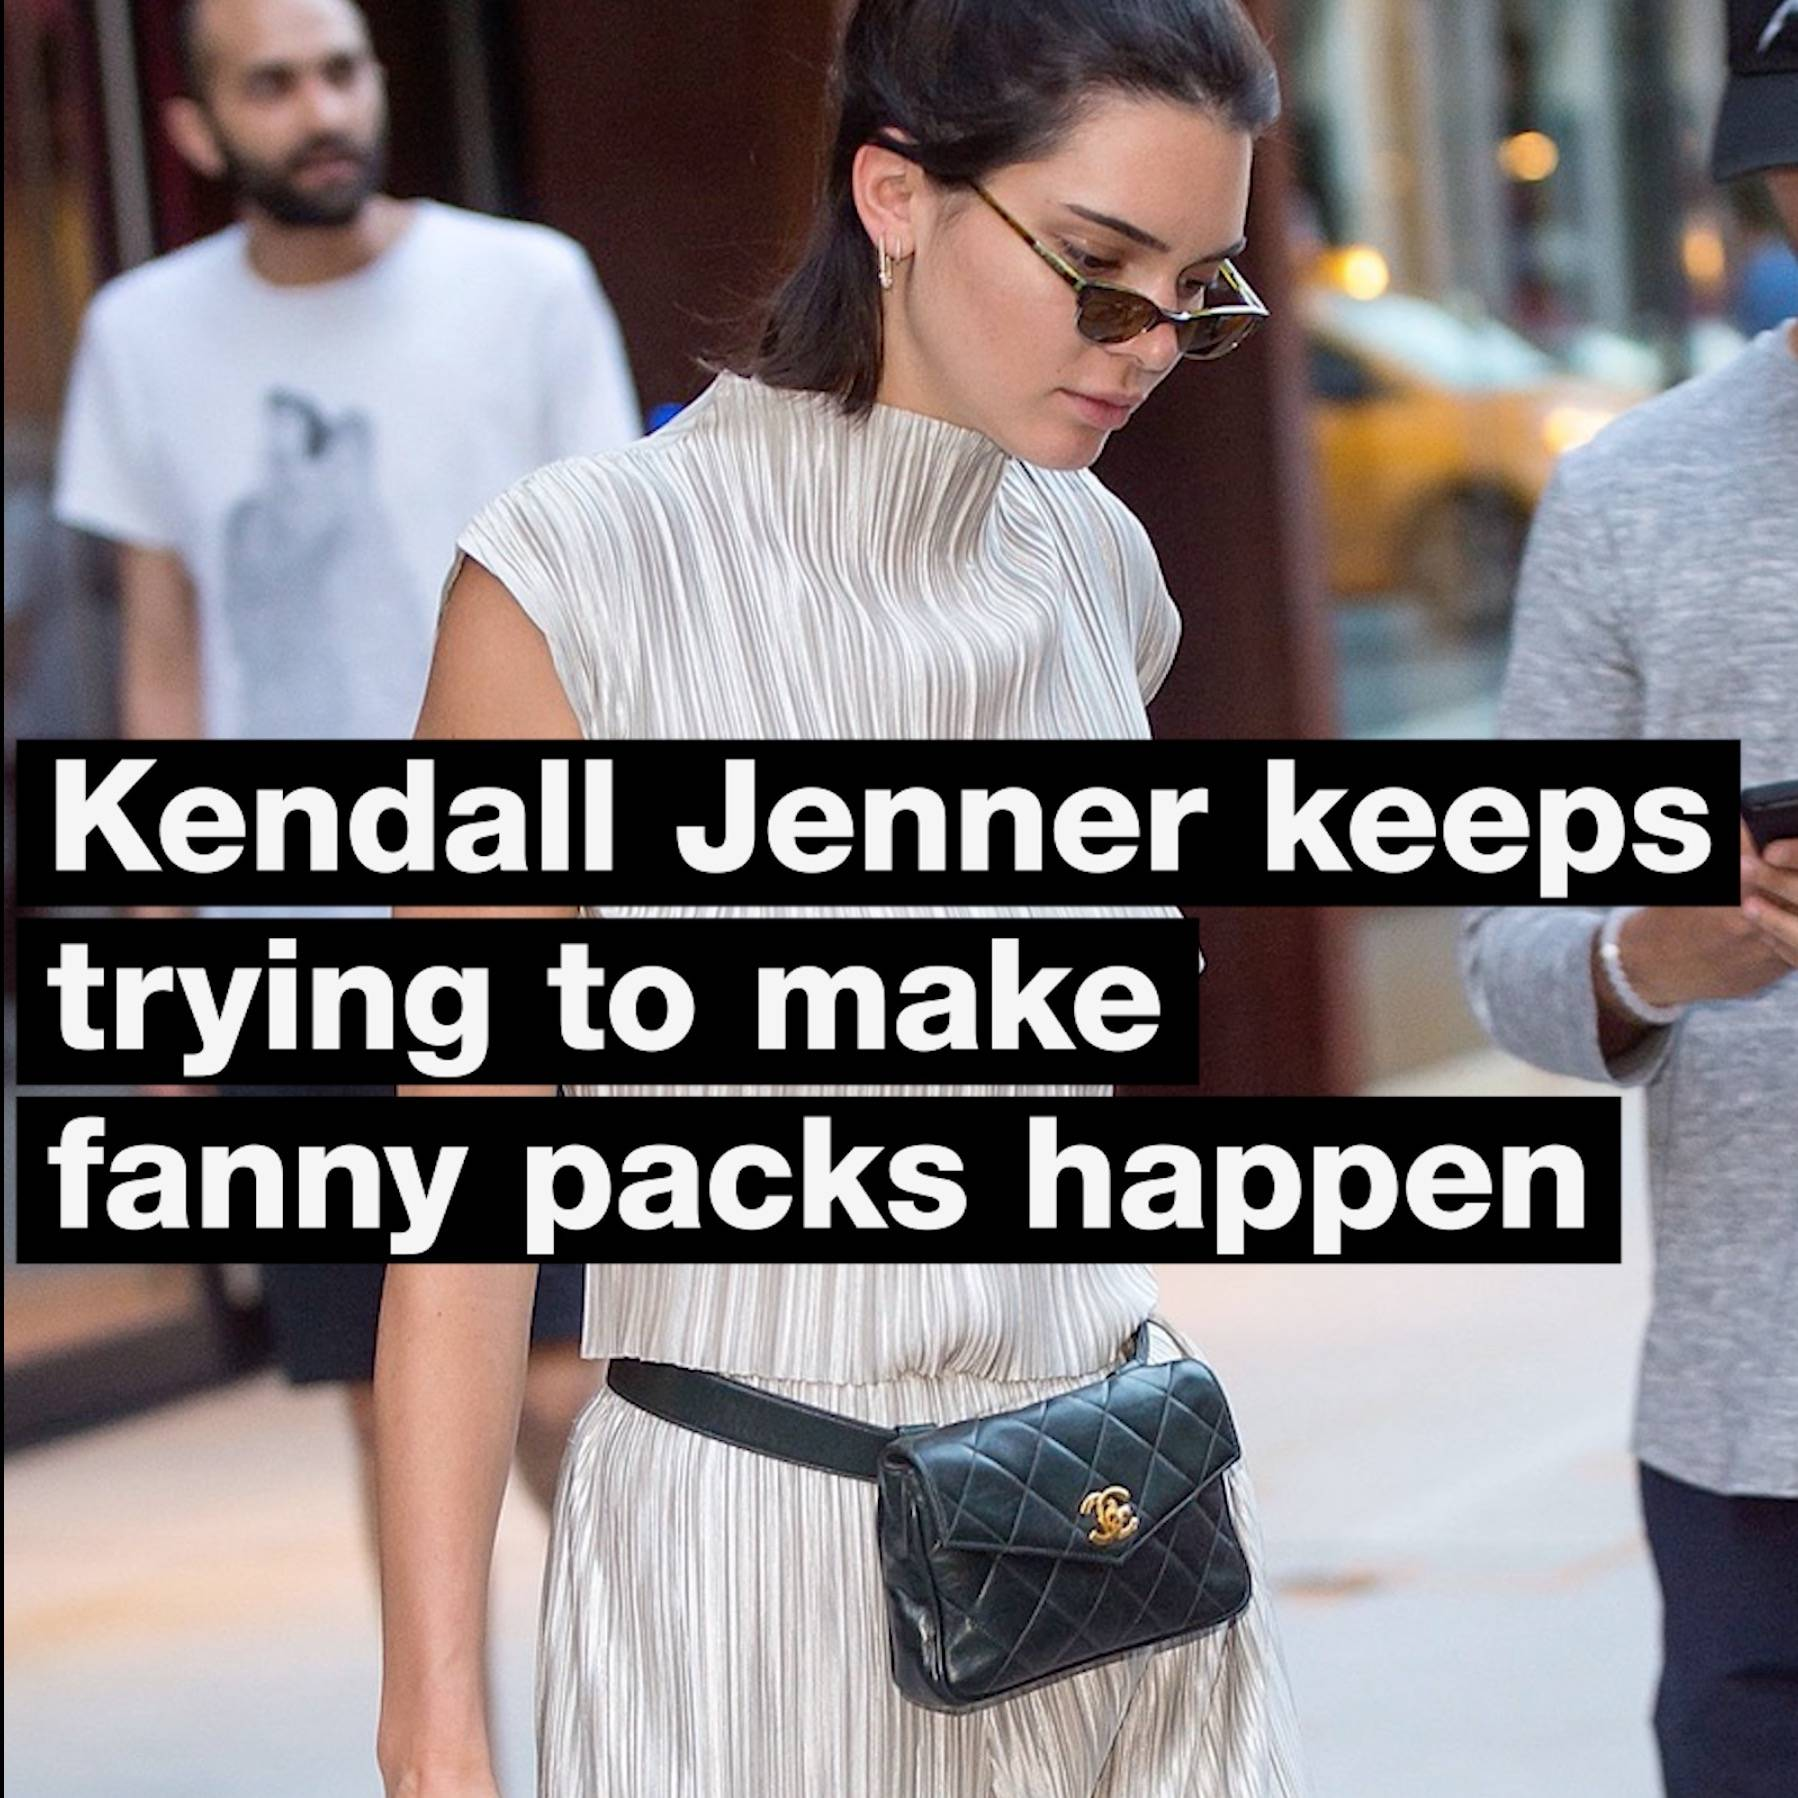 ae474cbd12d1 Kendall Jenner Keeps Trying To Make Luxury Fanny Packs Happen - MTV News  (Video Clip) | VMA